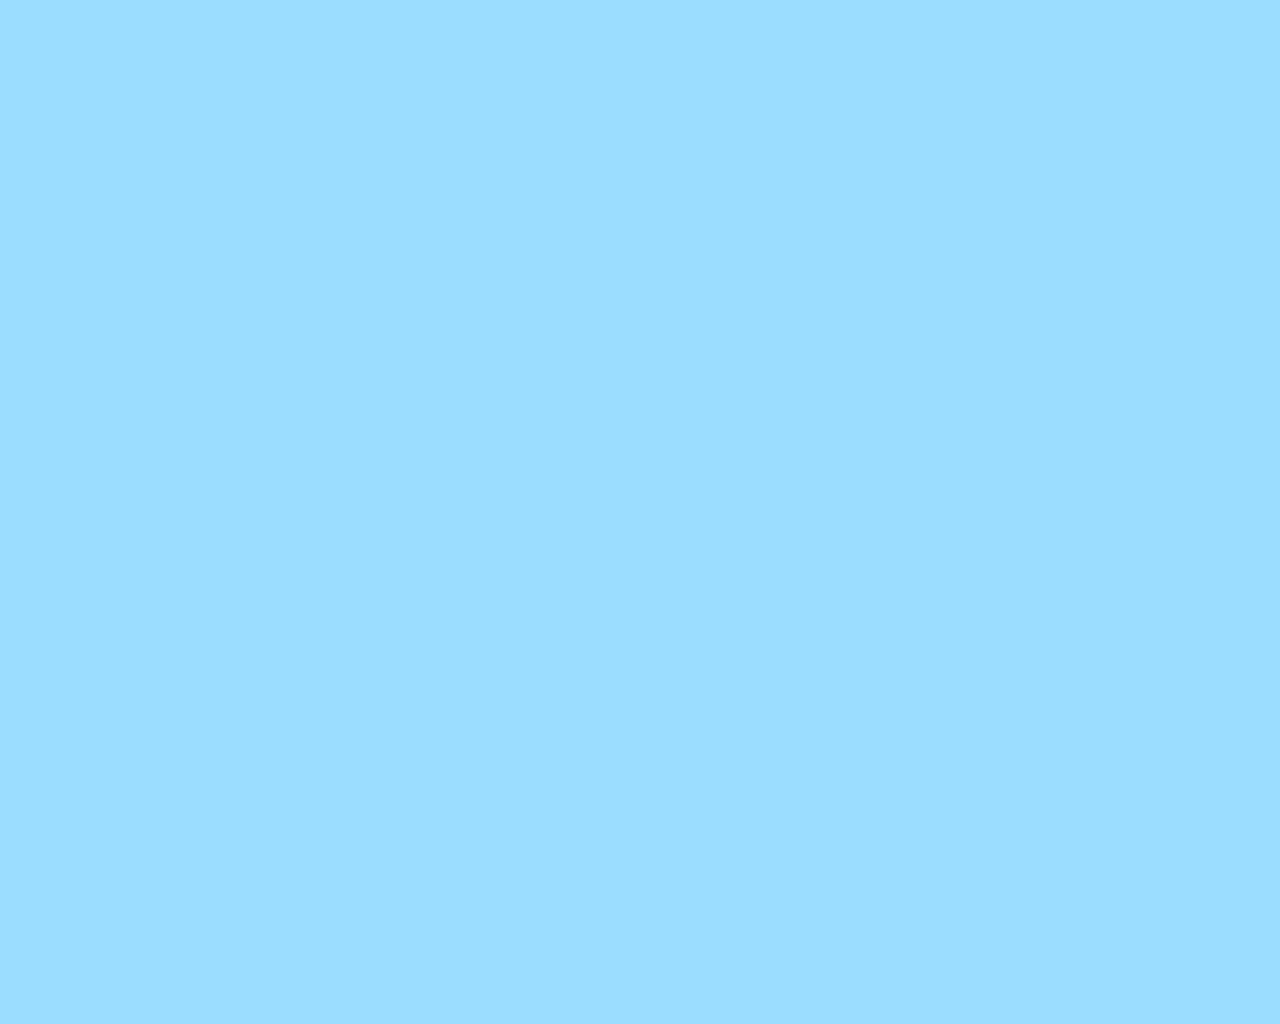 1280x1024 Columbia Blue Solid Color Background